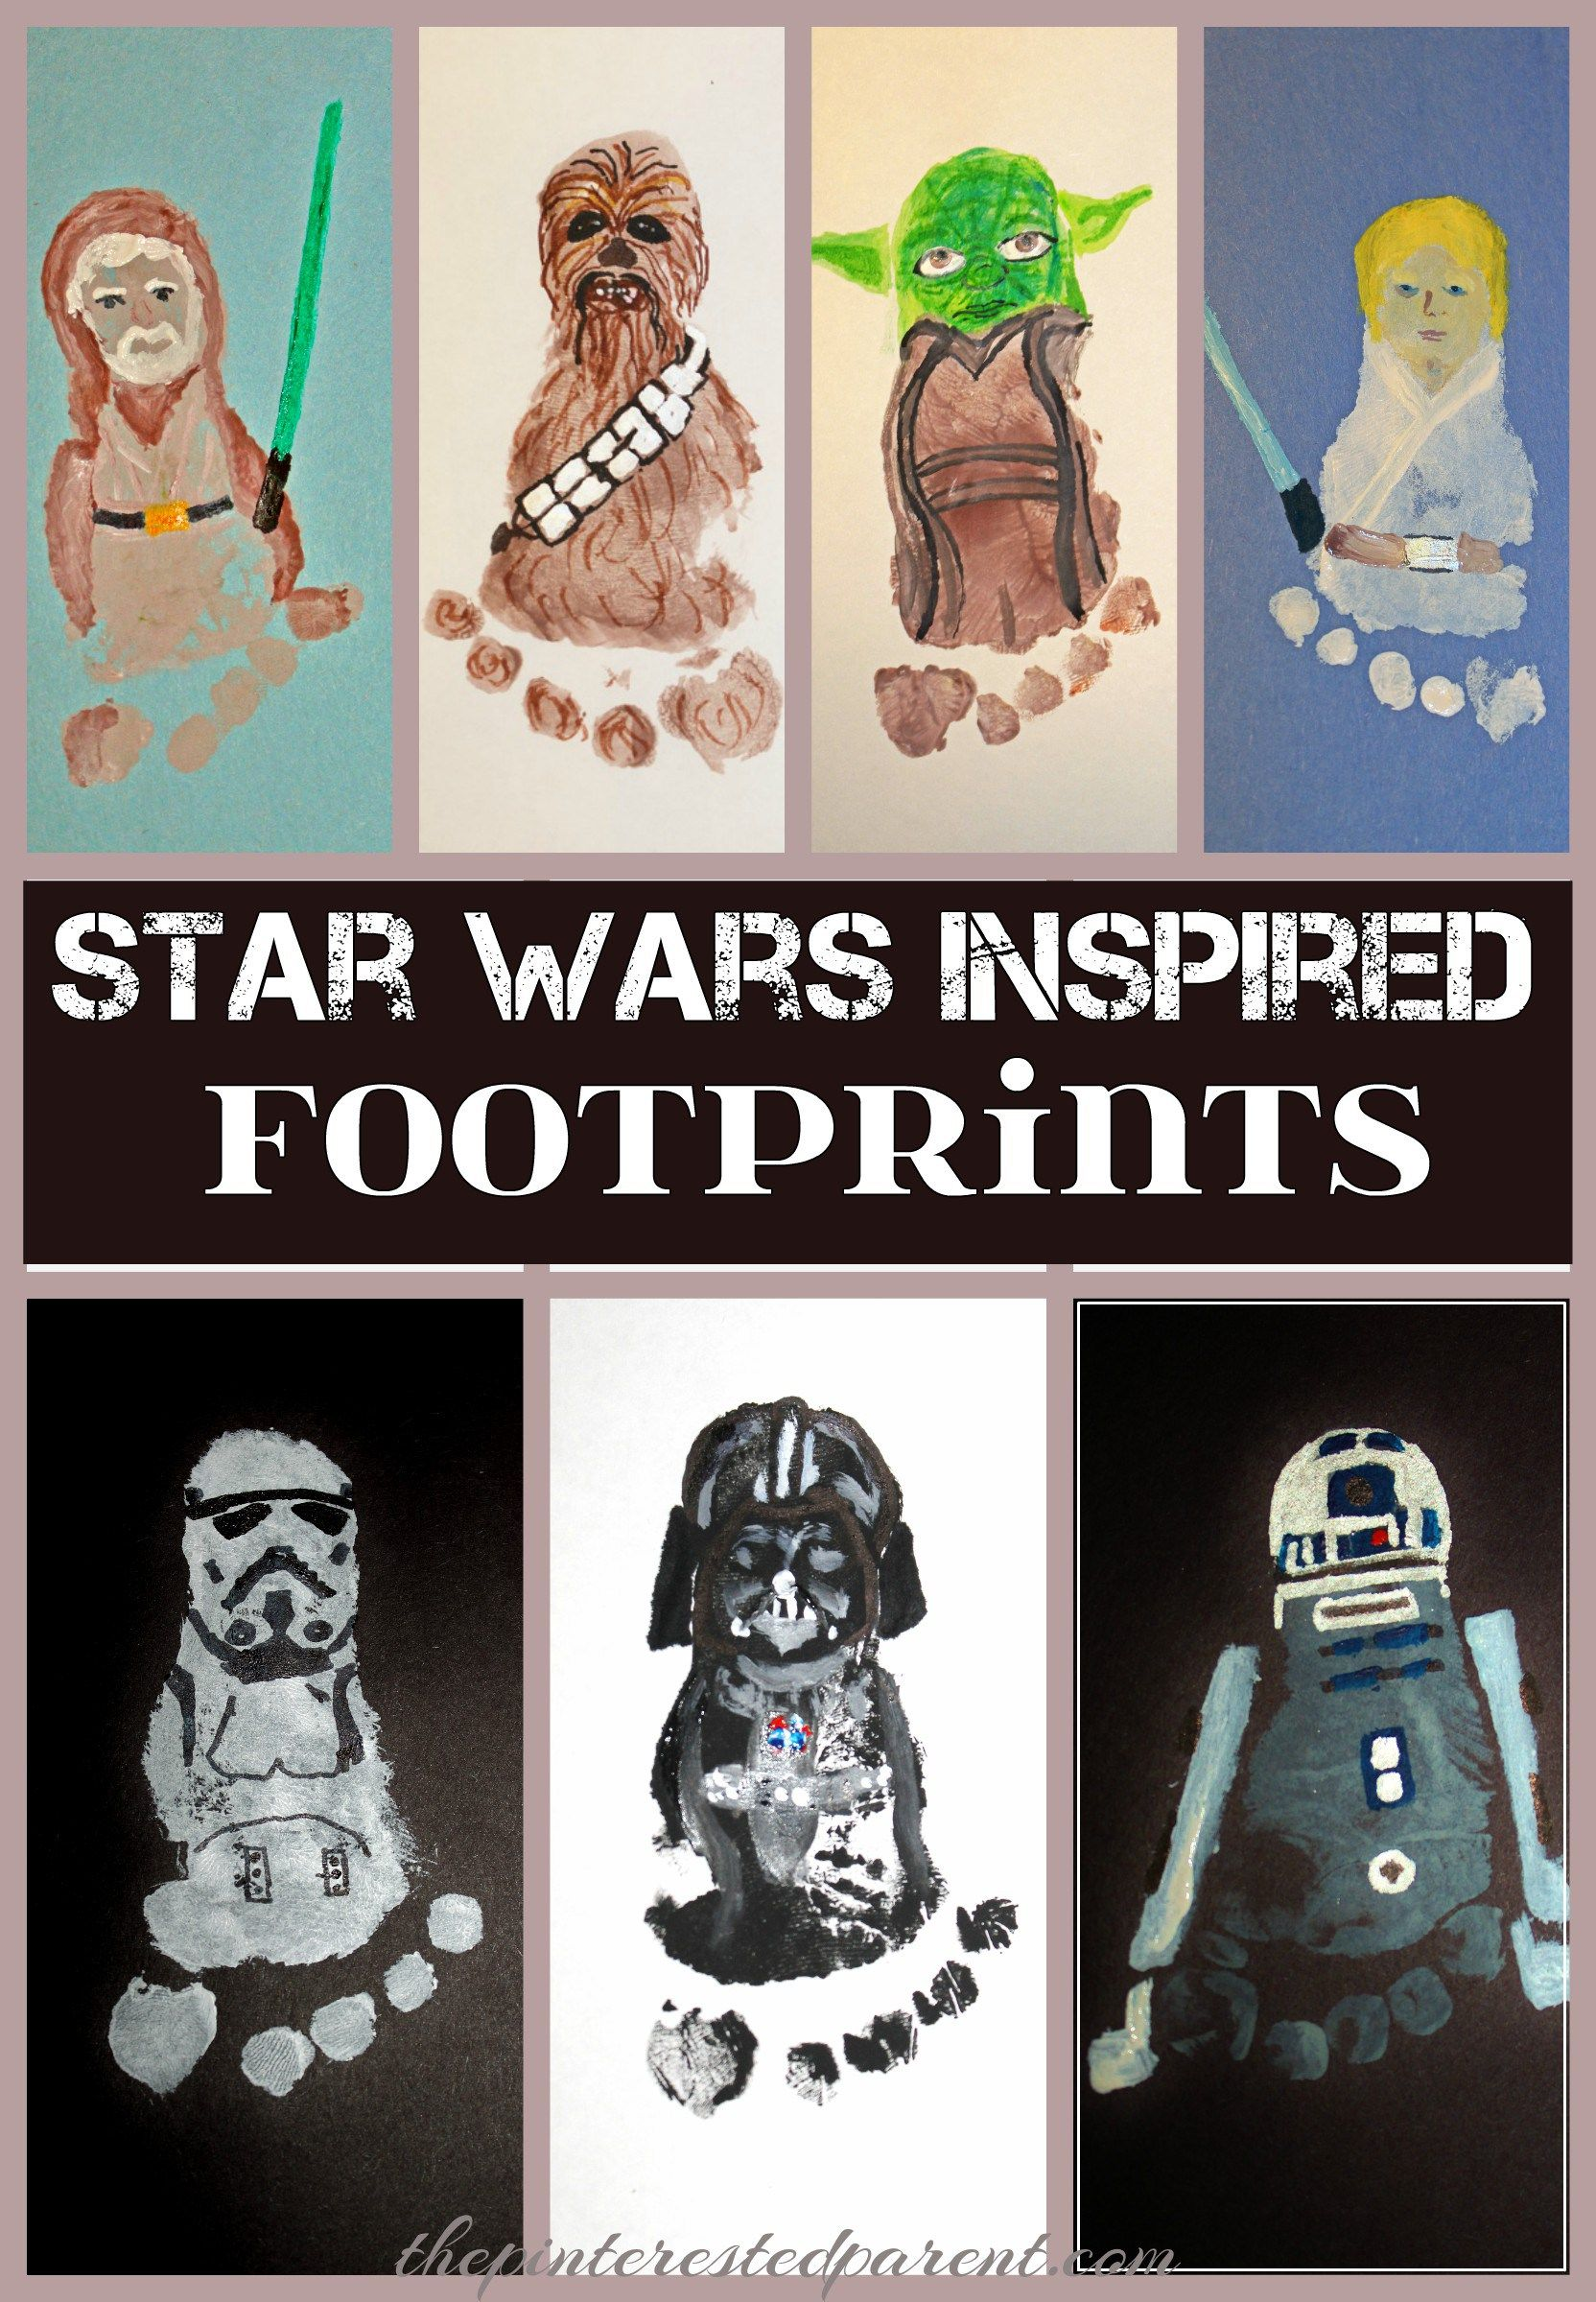 Star Wars Inspired Footprint Crafts Adorable Keepsakes made out